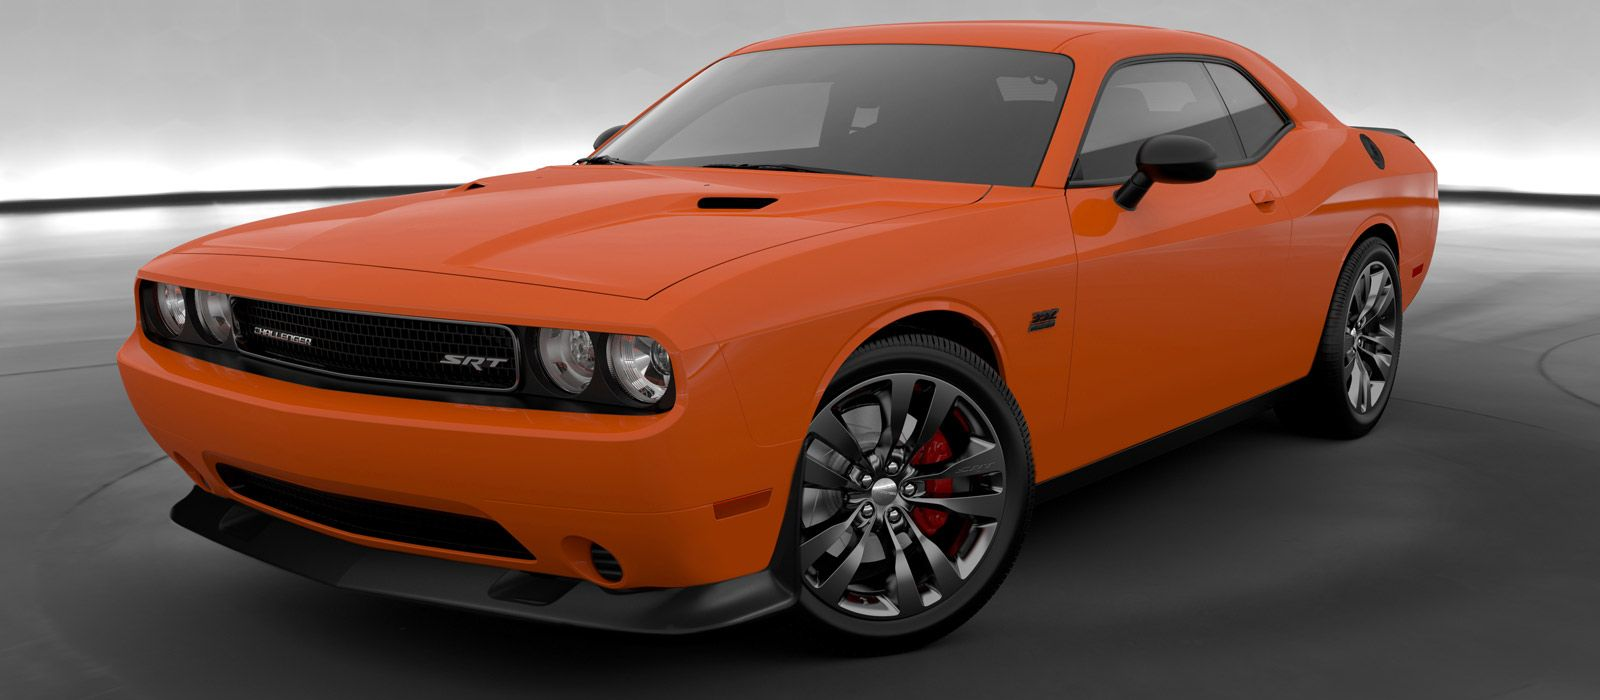 Challenger srt8 header orange